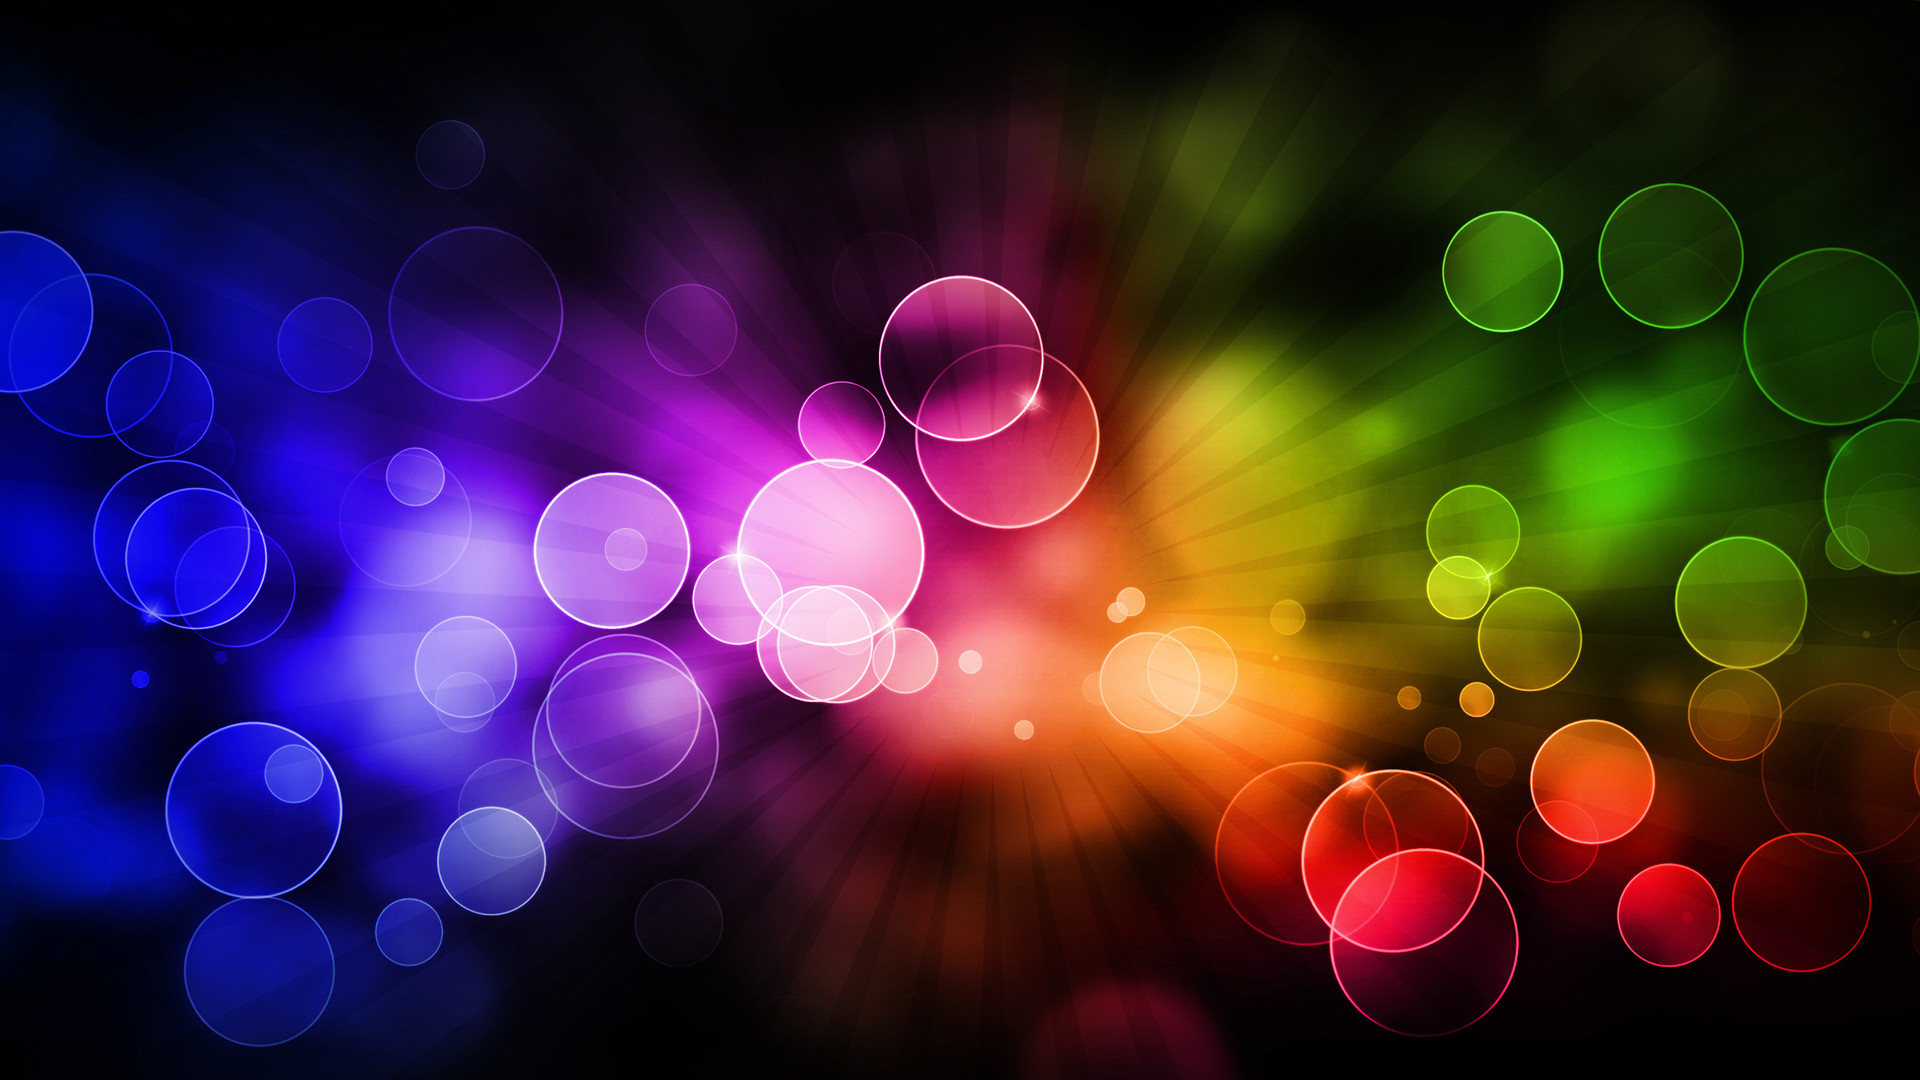 Rainbow Color Wallpaper 71 images